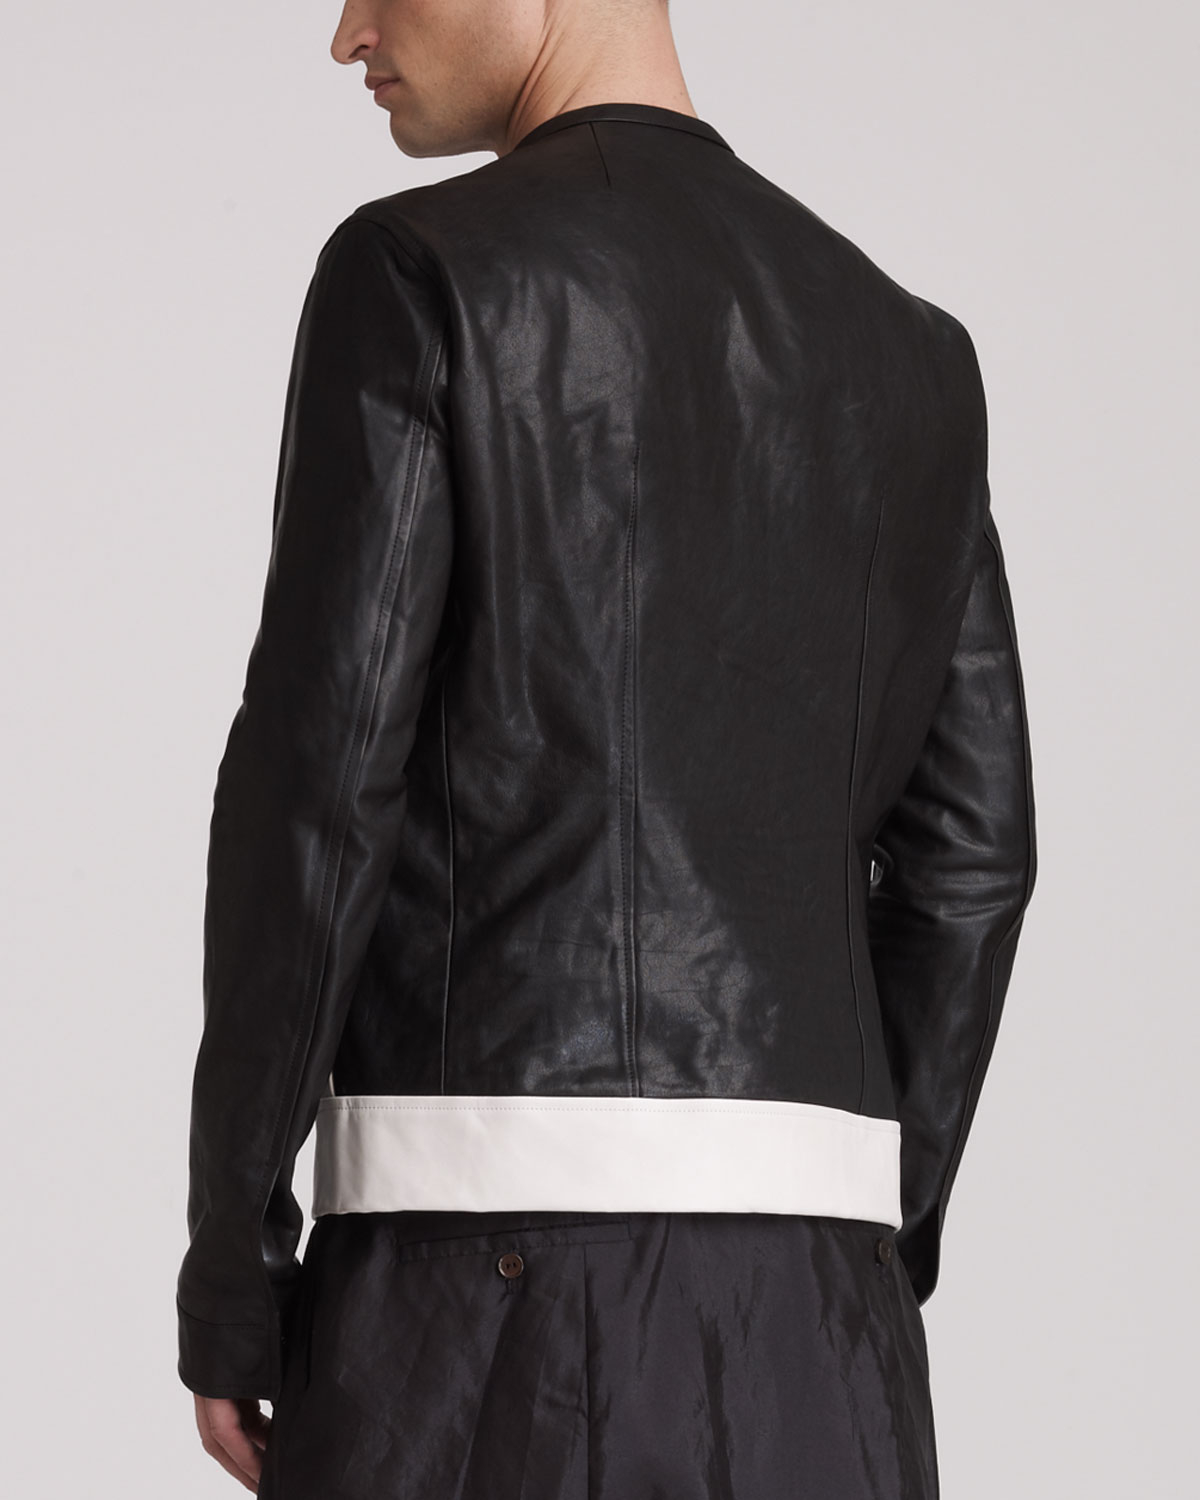 Cheap Rick Owens Paneled Leather Jacket Websites Online Outlet Locations Cheap Price Clearance Low Shipping g1aUBGeN